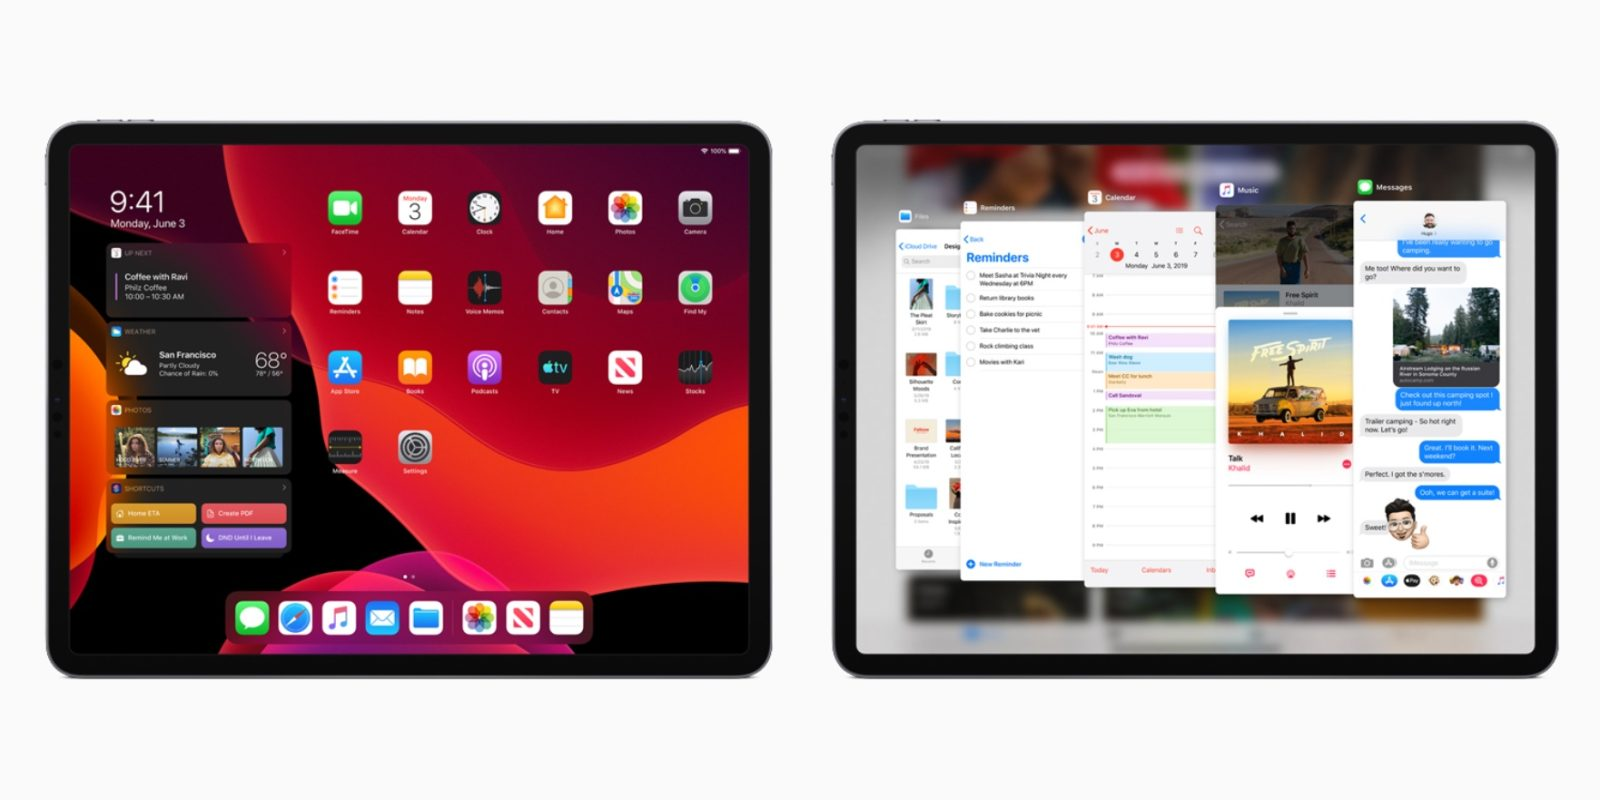 Apple releases iPadOS 13.1 featuring Dark Mode, new Home Screen and multitasking, Arcade, and more